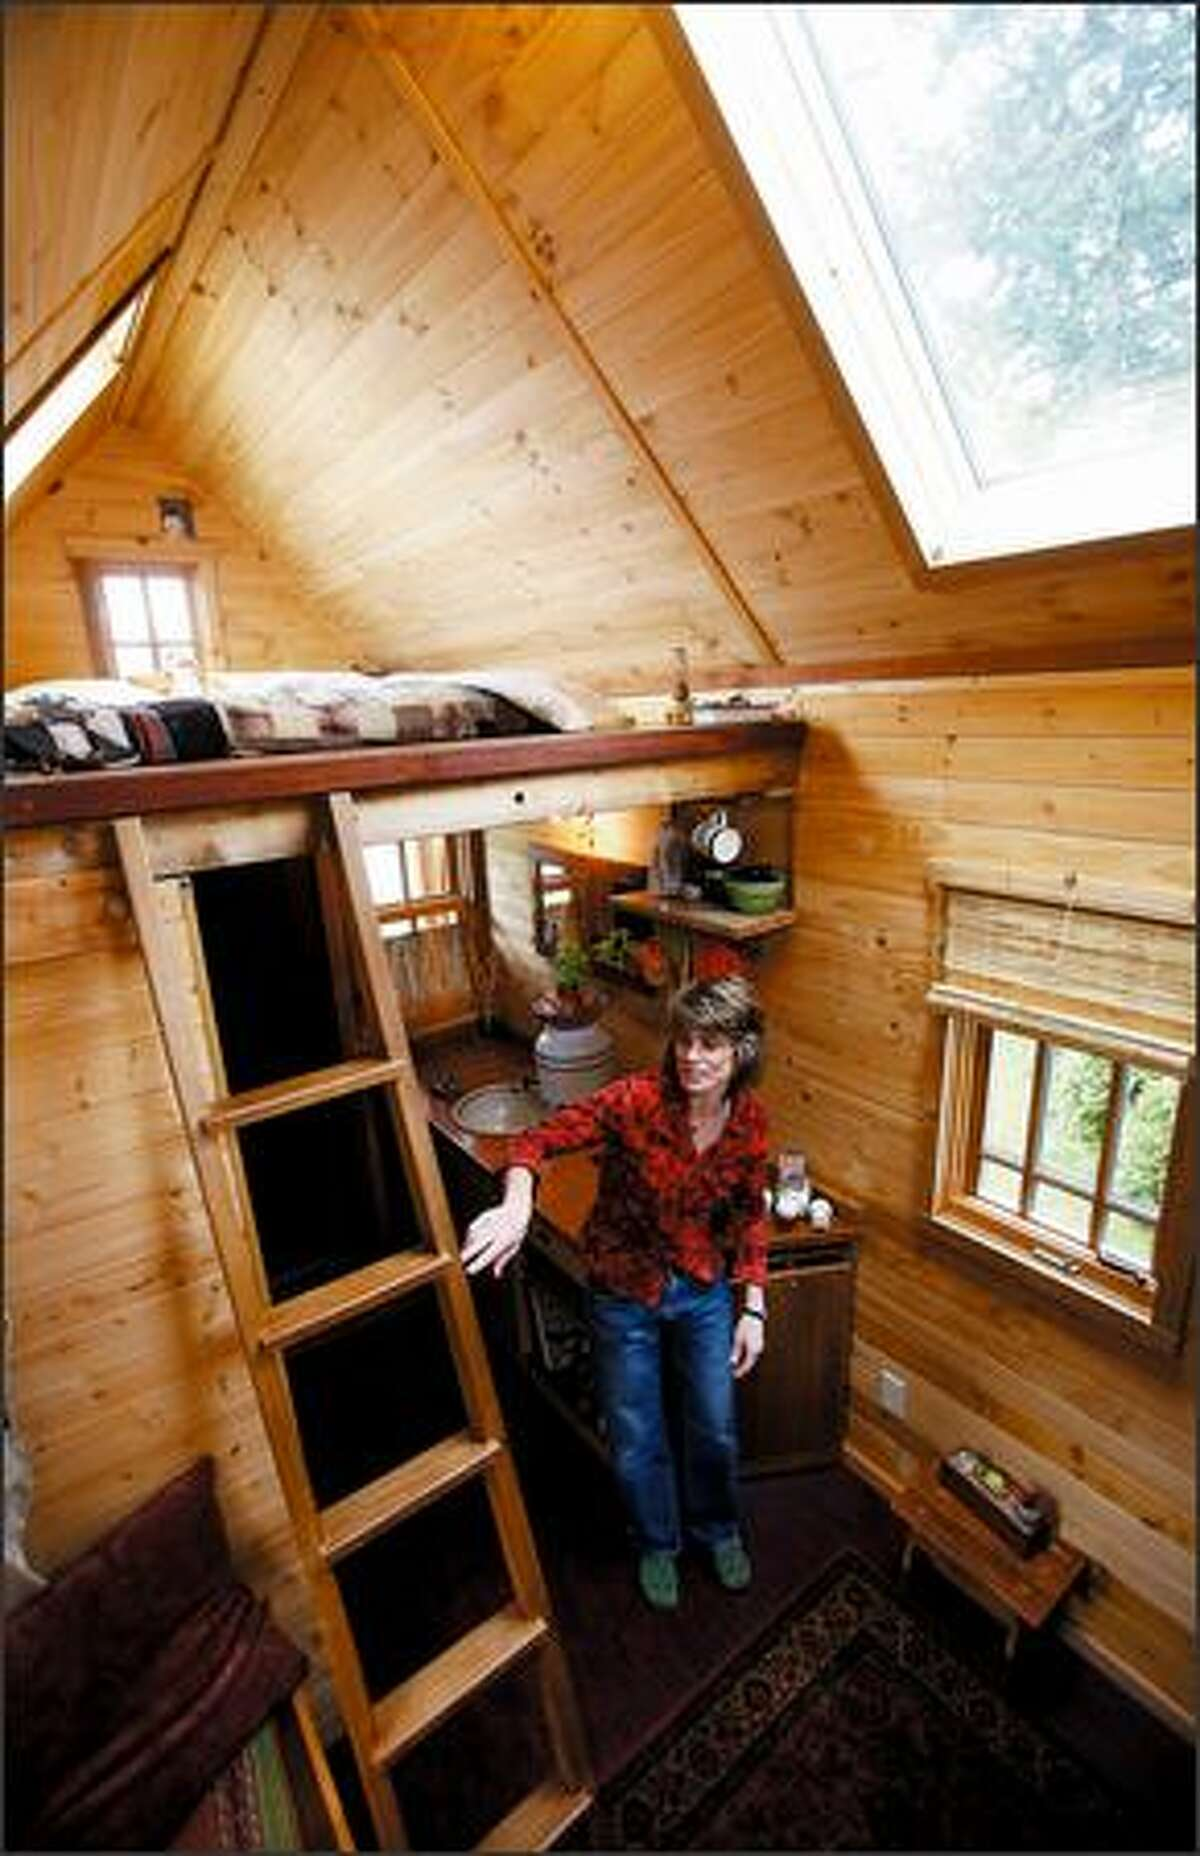 Dee Williams lives in a 7-by-12-foot Tumbleweed Tiny House in Olympia that was built for $10,000, including solar panels, ecofriendly denim insulation, high-quality wood windows and a trailer.